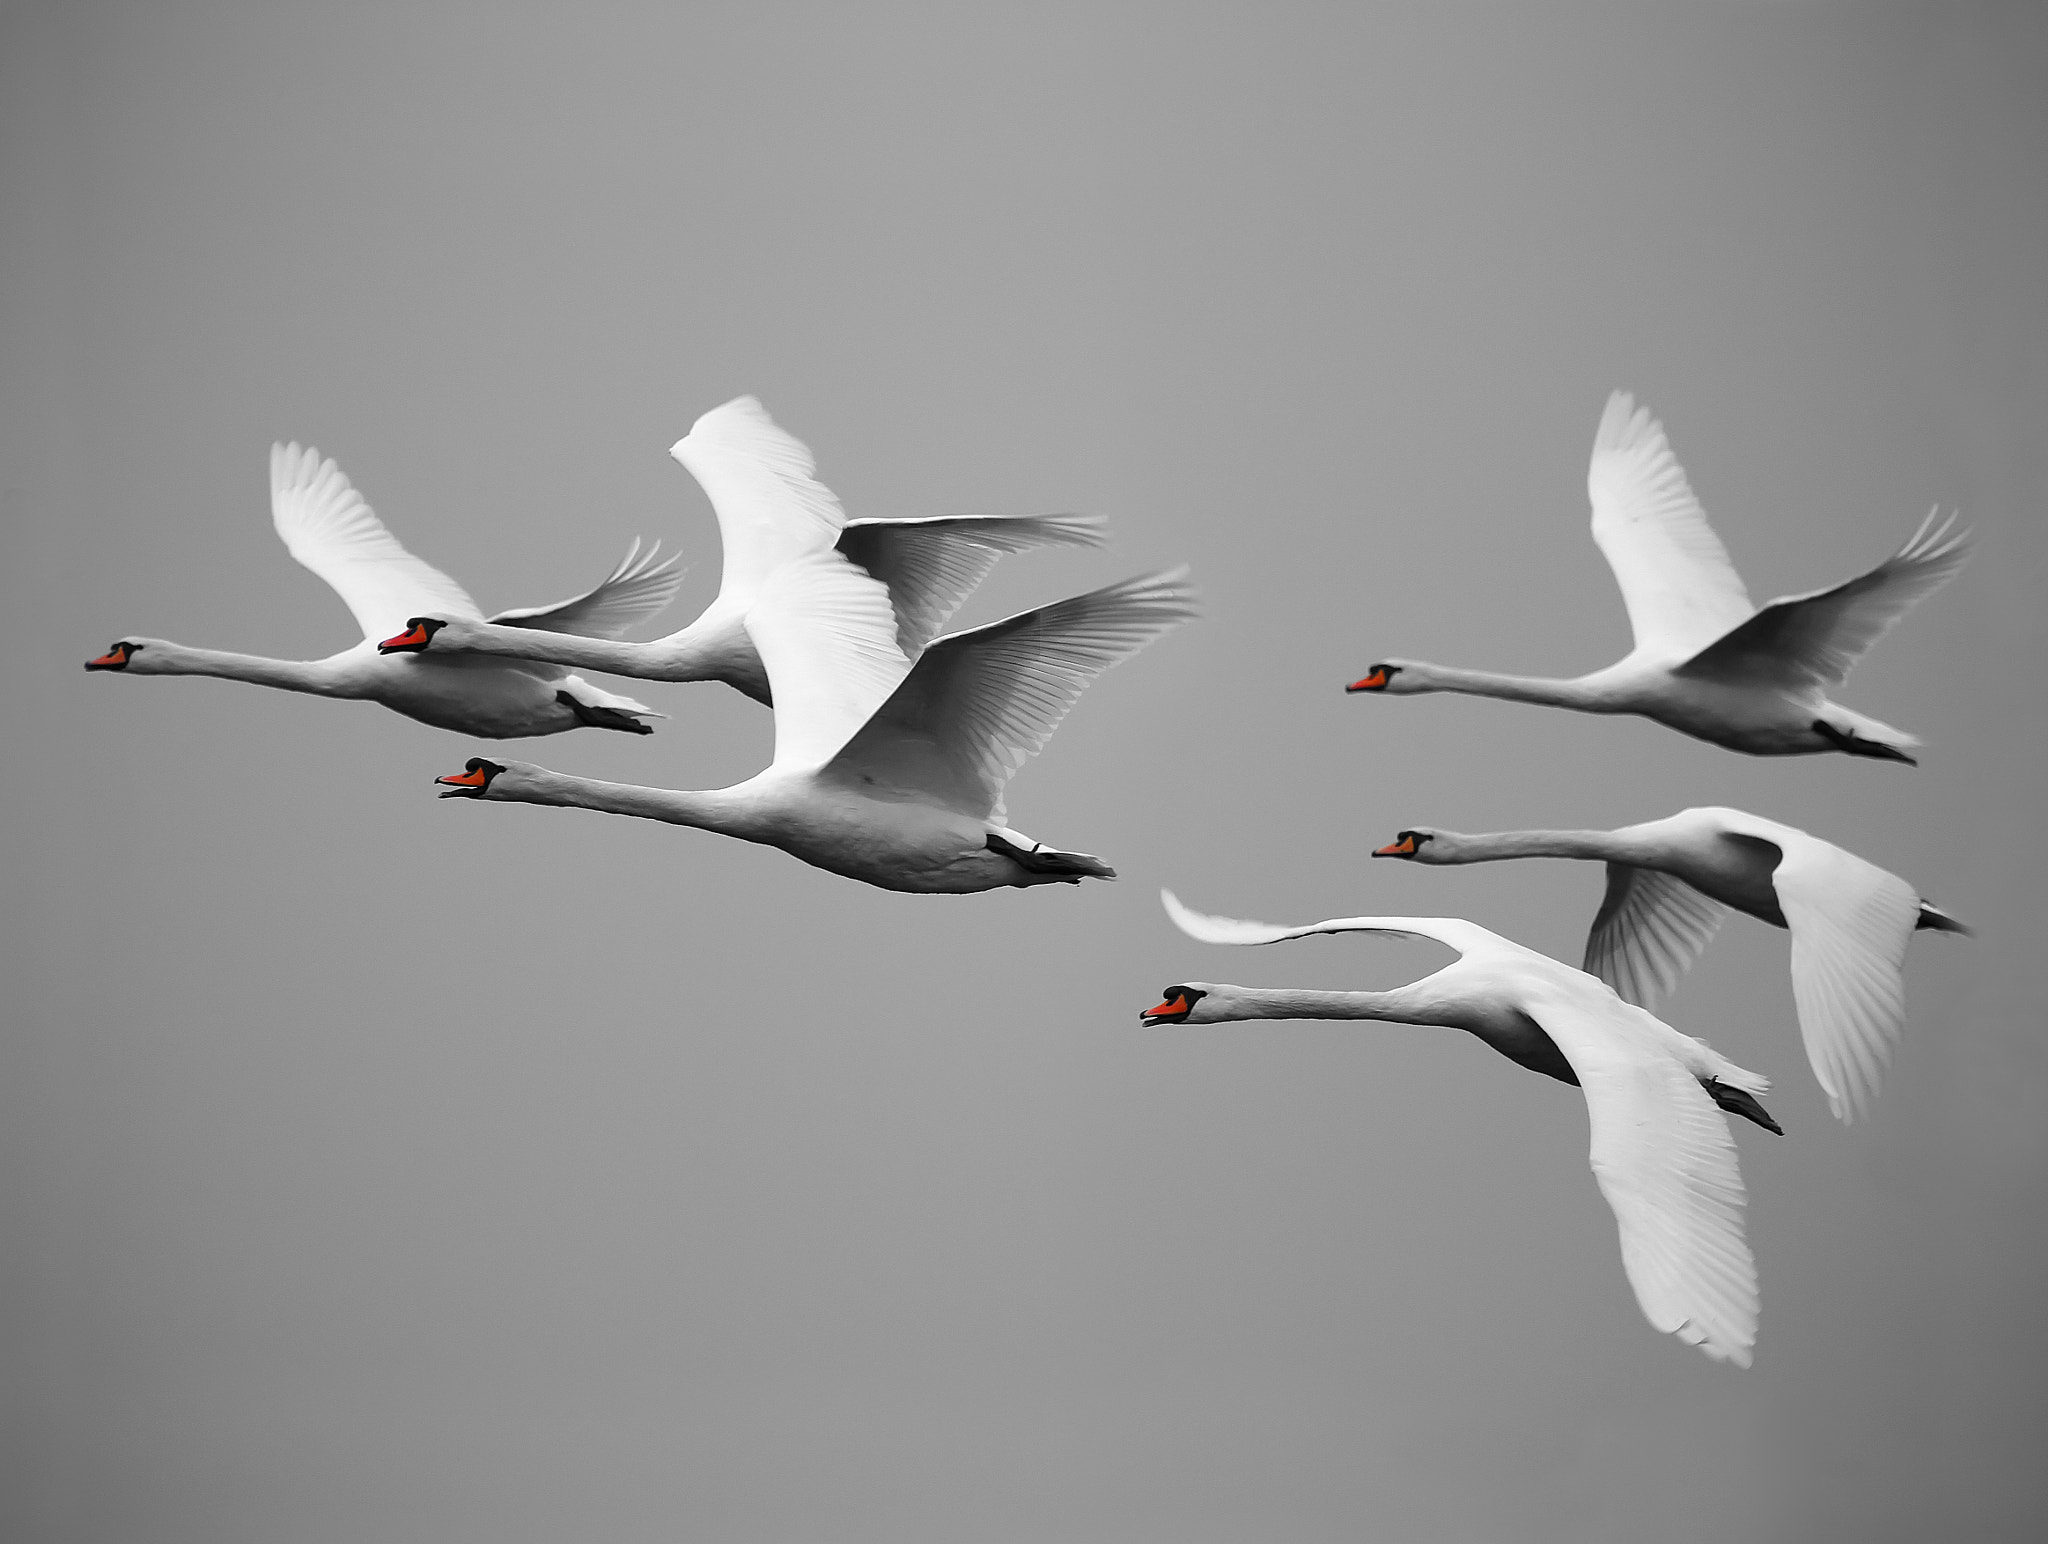 Photograph Swans in flight by Mike Burton Phillipson on 500px